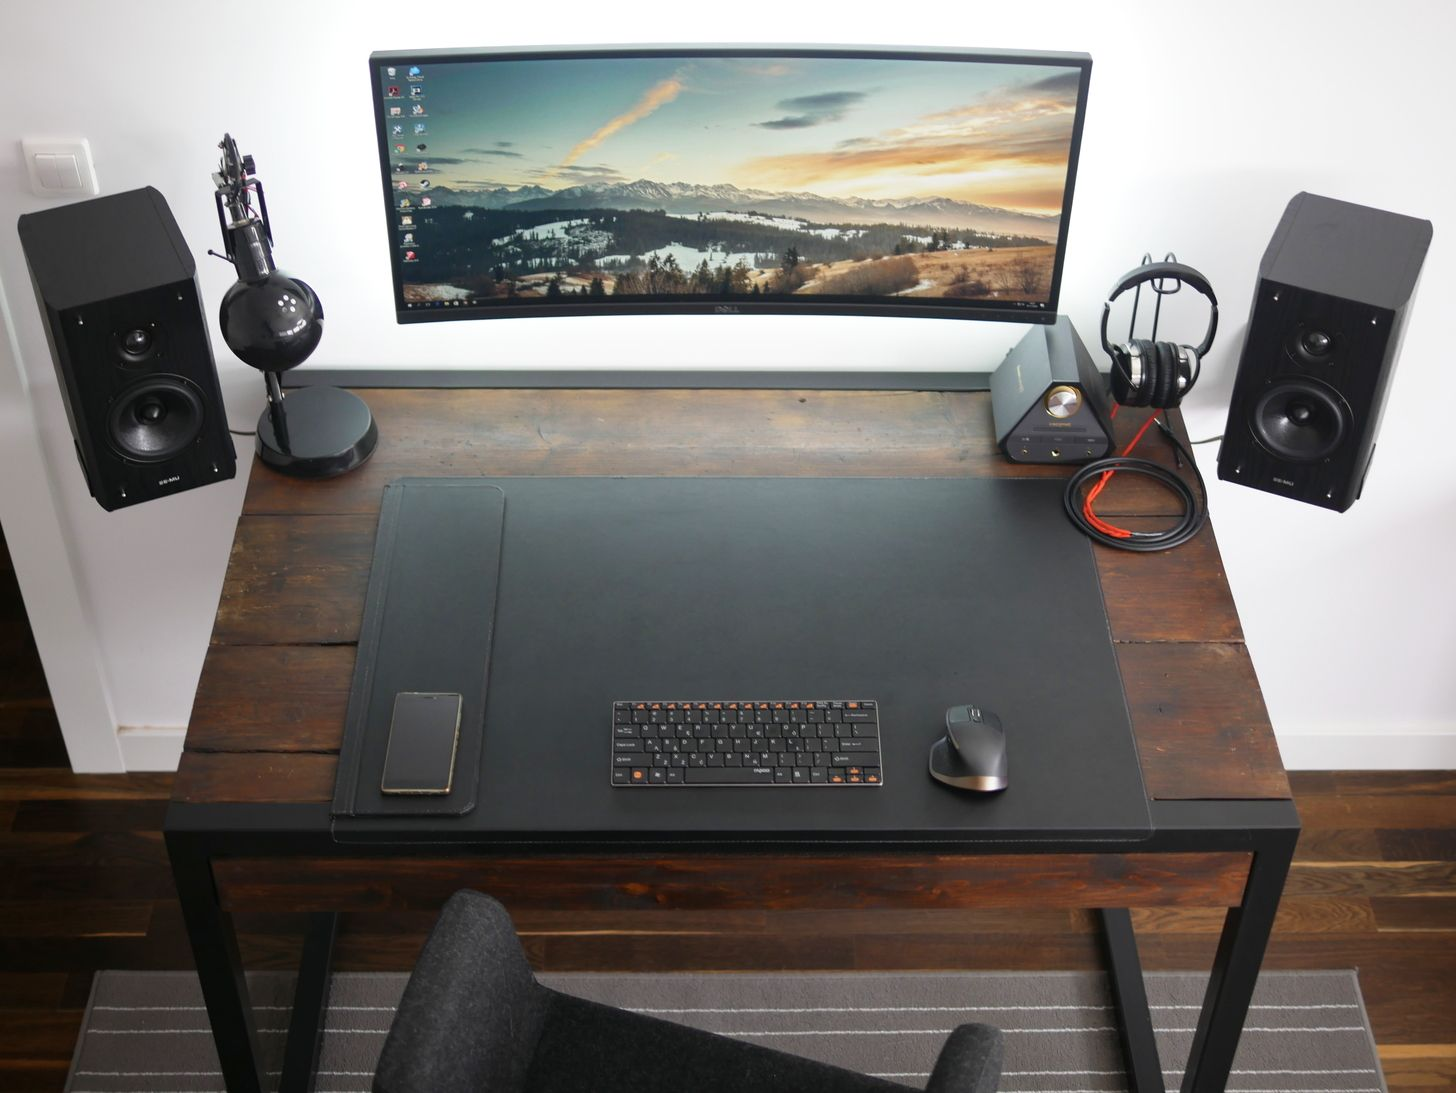 My Highly Minimal Home Office Home Office Setup Computer Desk Setup Home Office Design